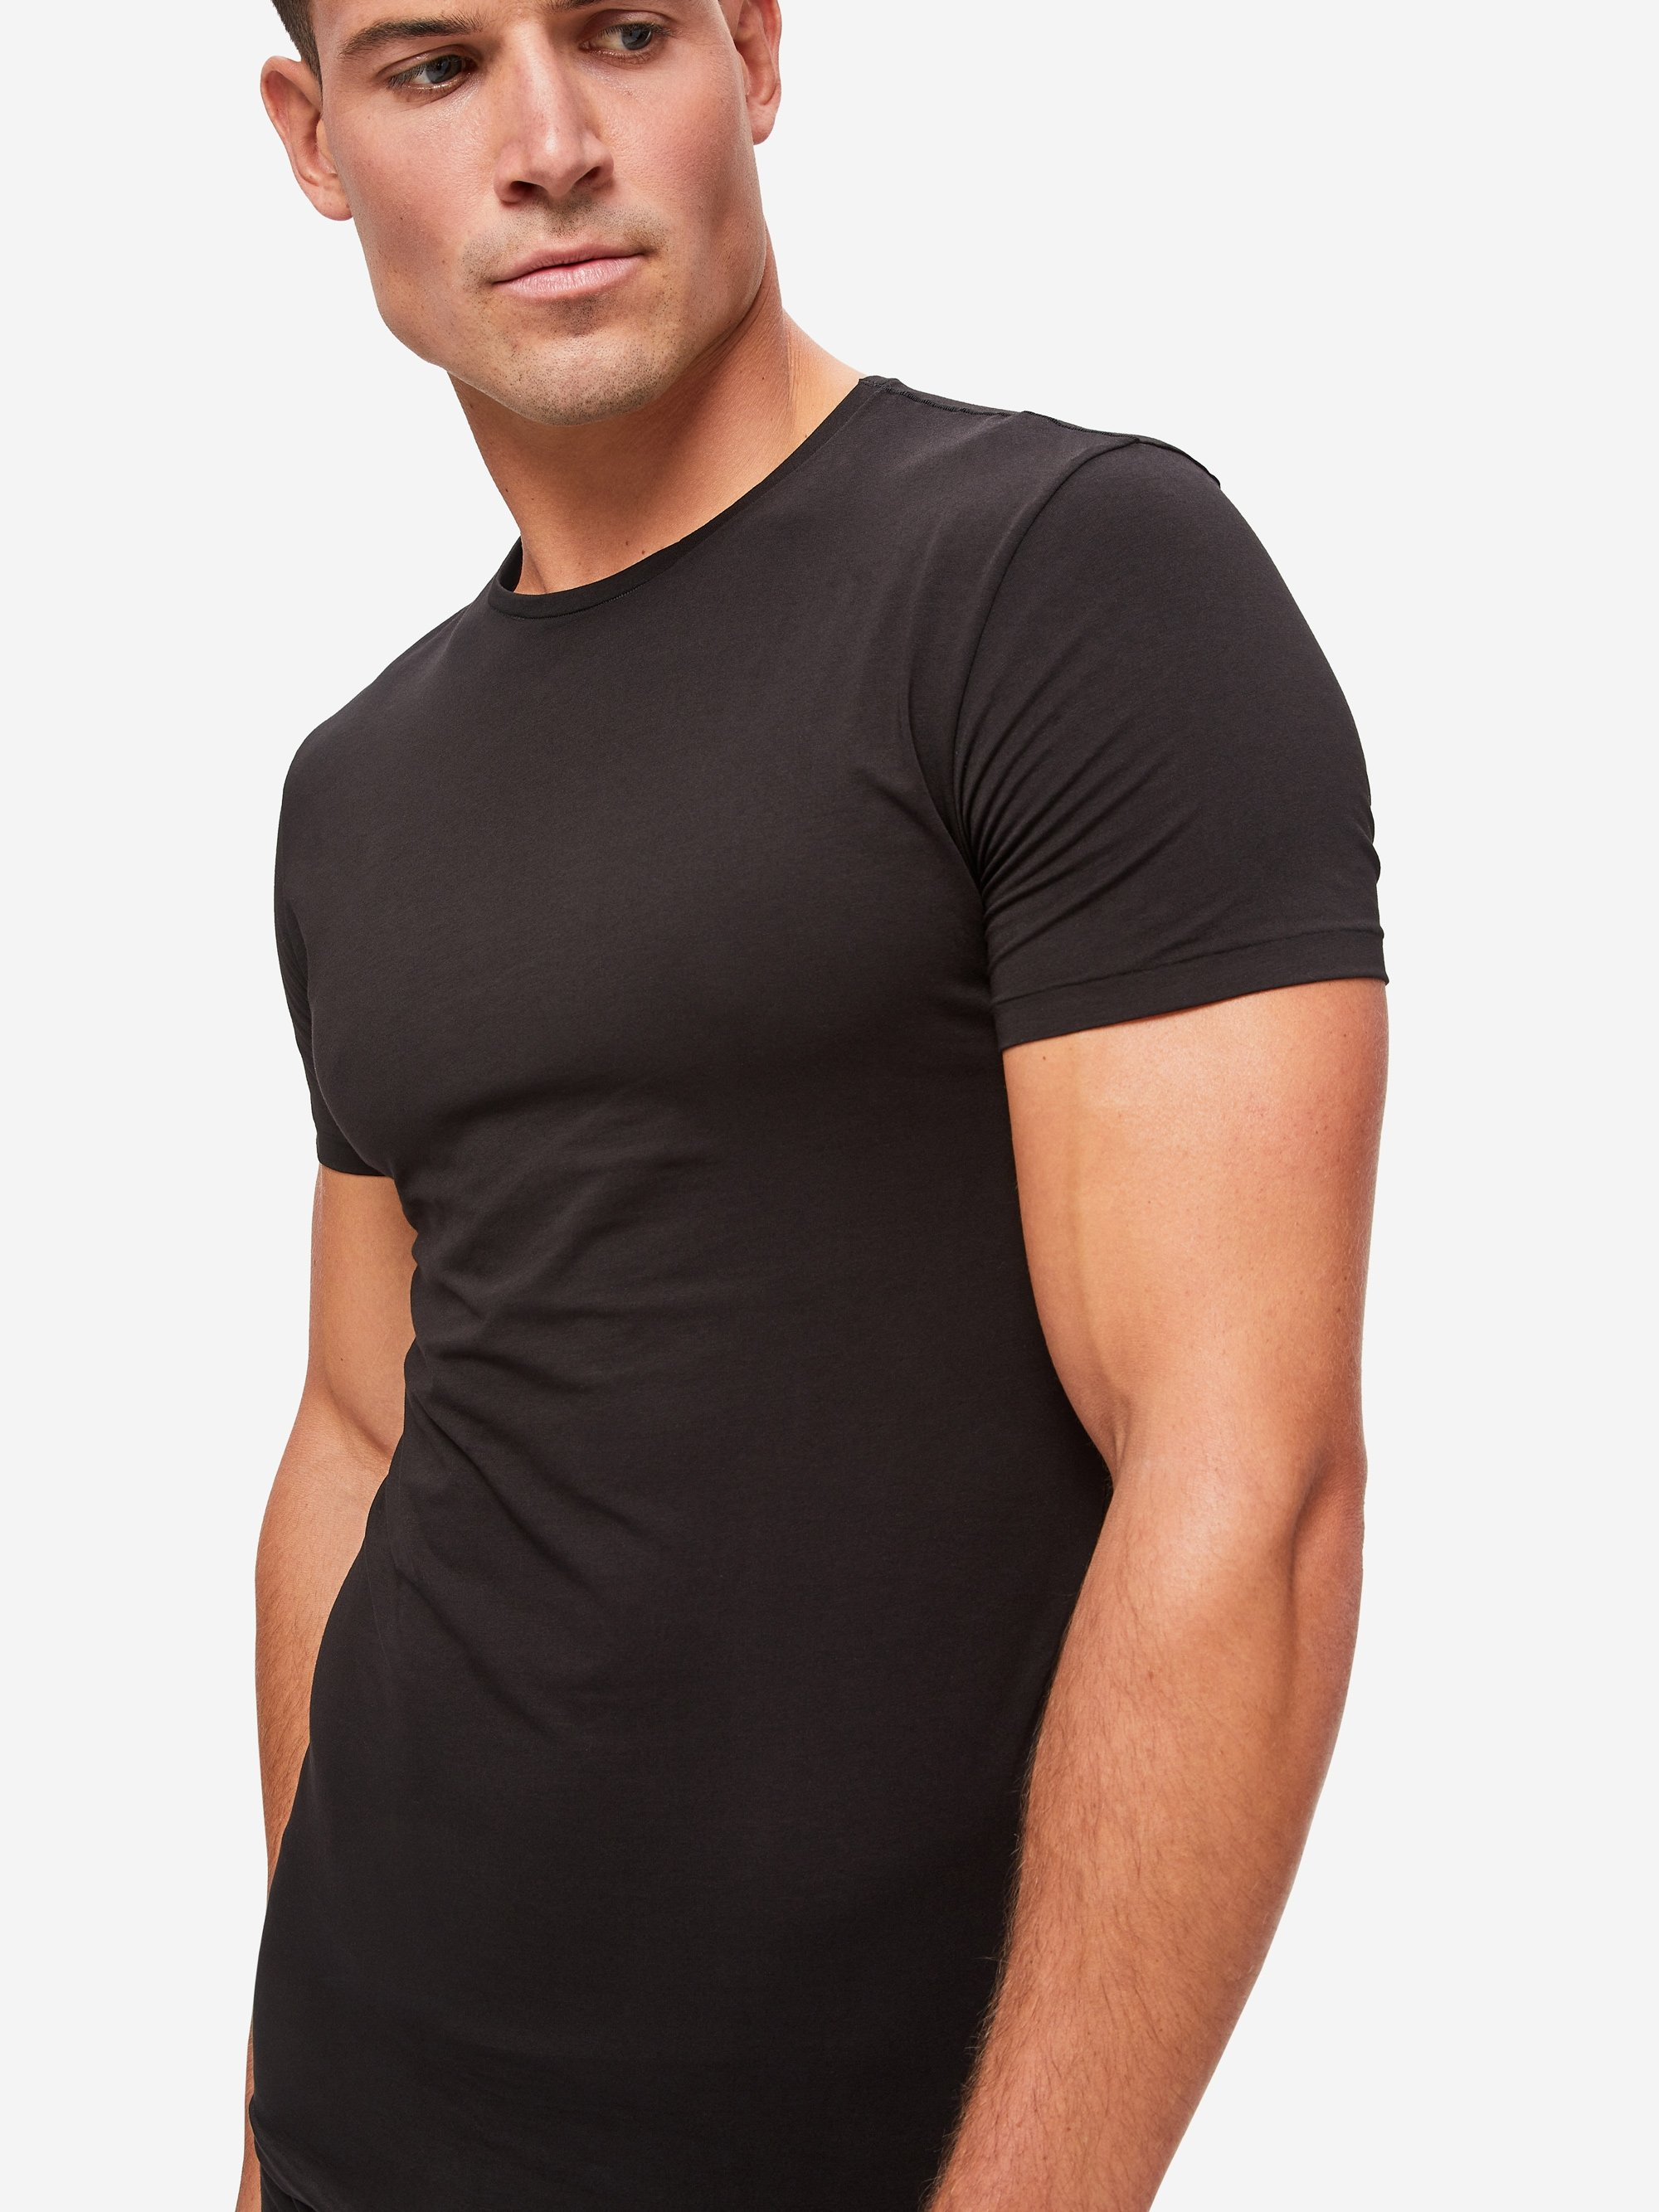 Men's Underwear Crew-Neck T-Shirt Jack Pima Cotton Stretch Black